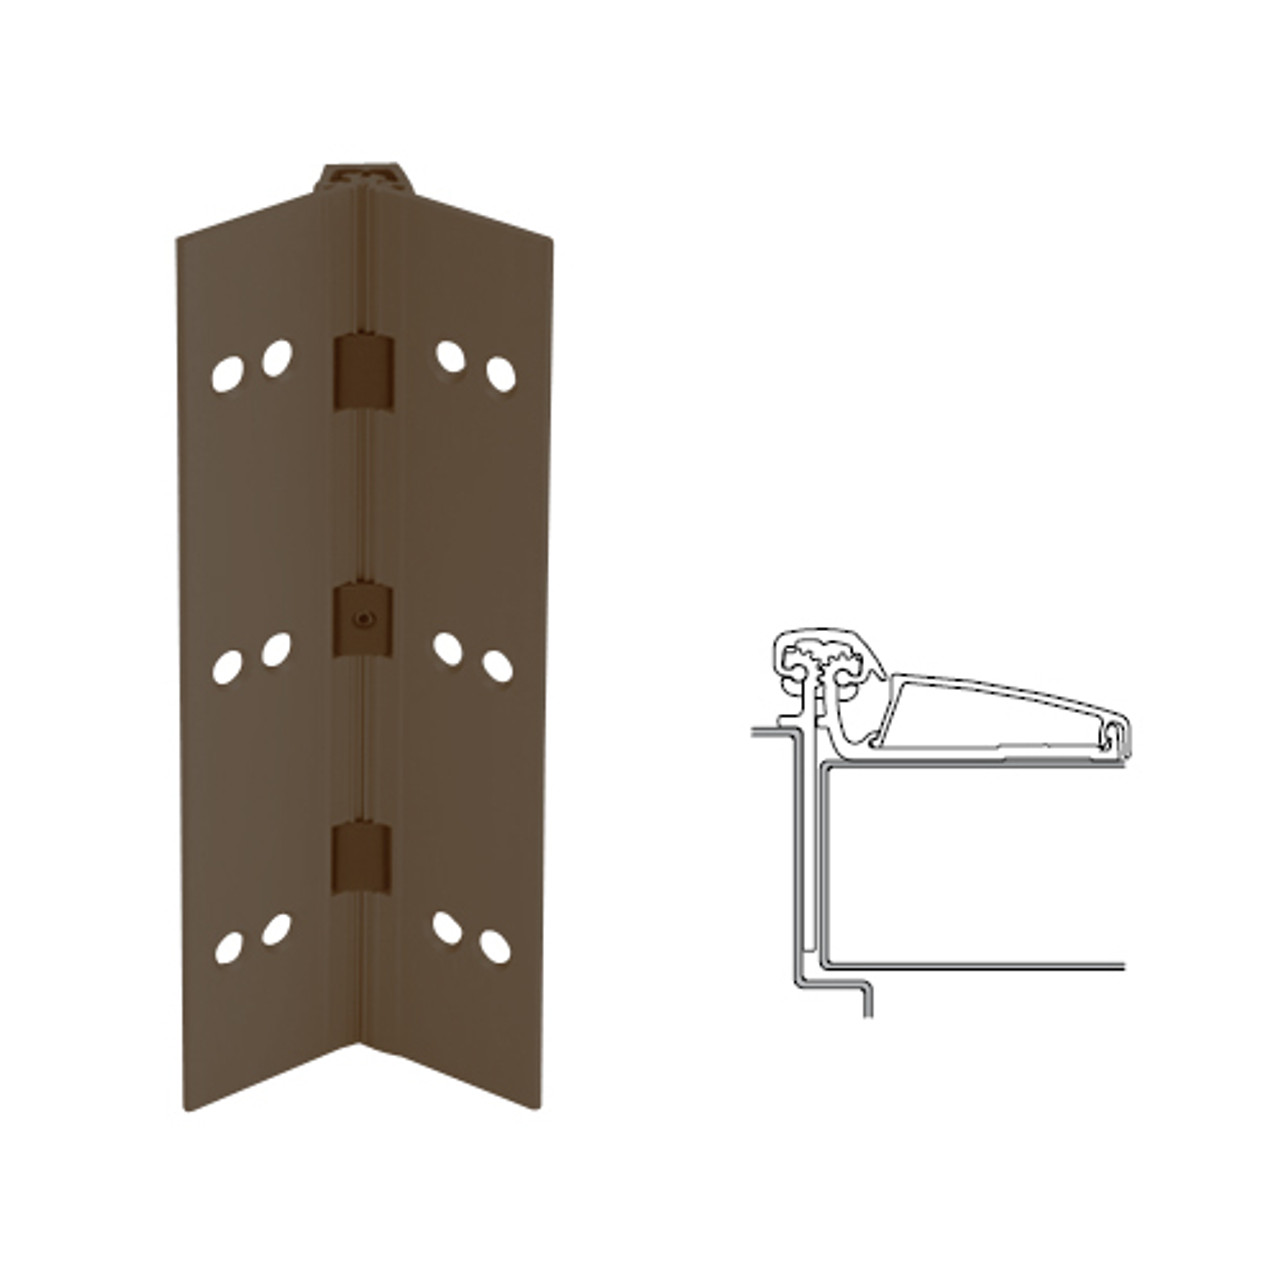 046XY-313AN-95-SECWDWD IVES Adjustable Half Surface Continuous Geared Hinges with Security Screws - Hex Pin Drive in Dark Bronze Anodized